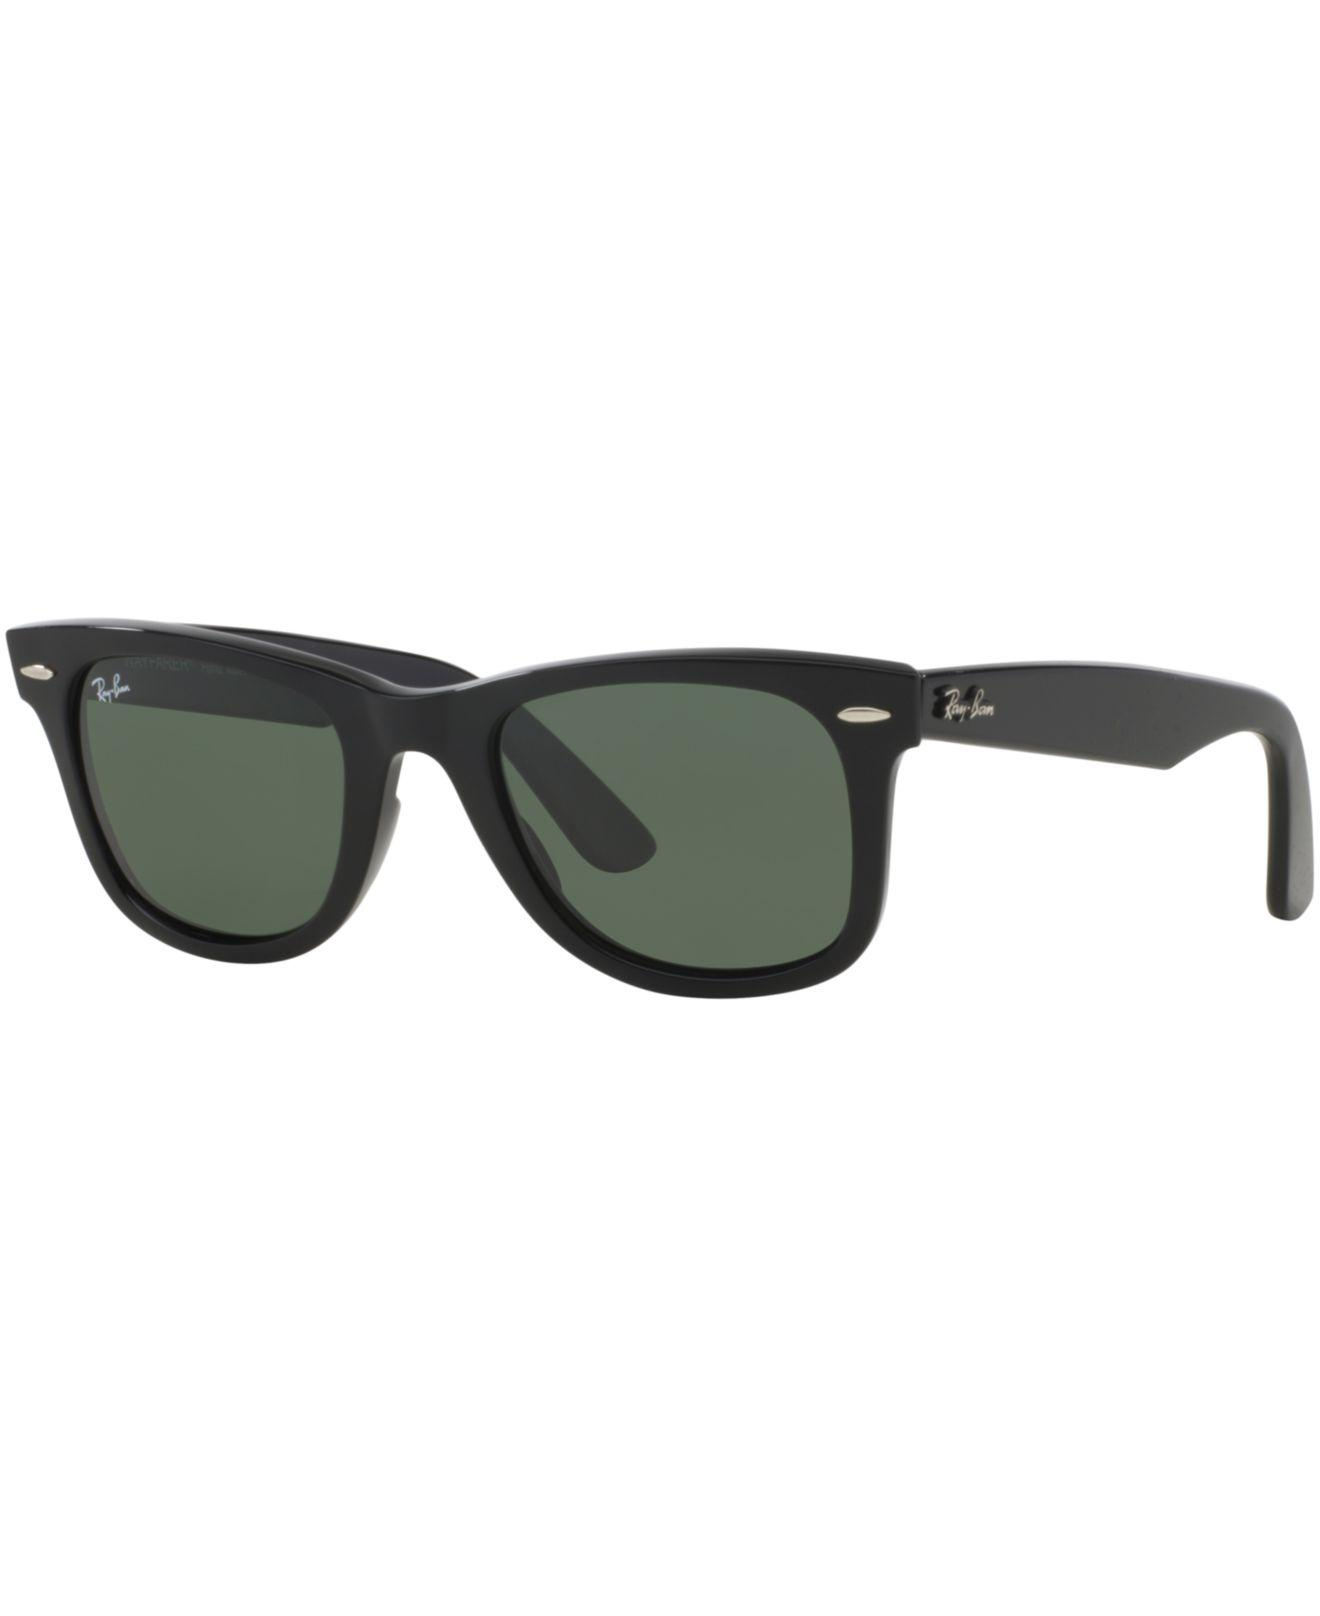 50cc97fbf24 Lyst - Ray-Ban Unisex Rb2140 Original Wayfarer Polarized Sunglasses ...